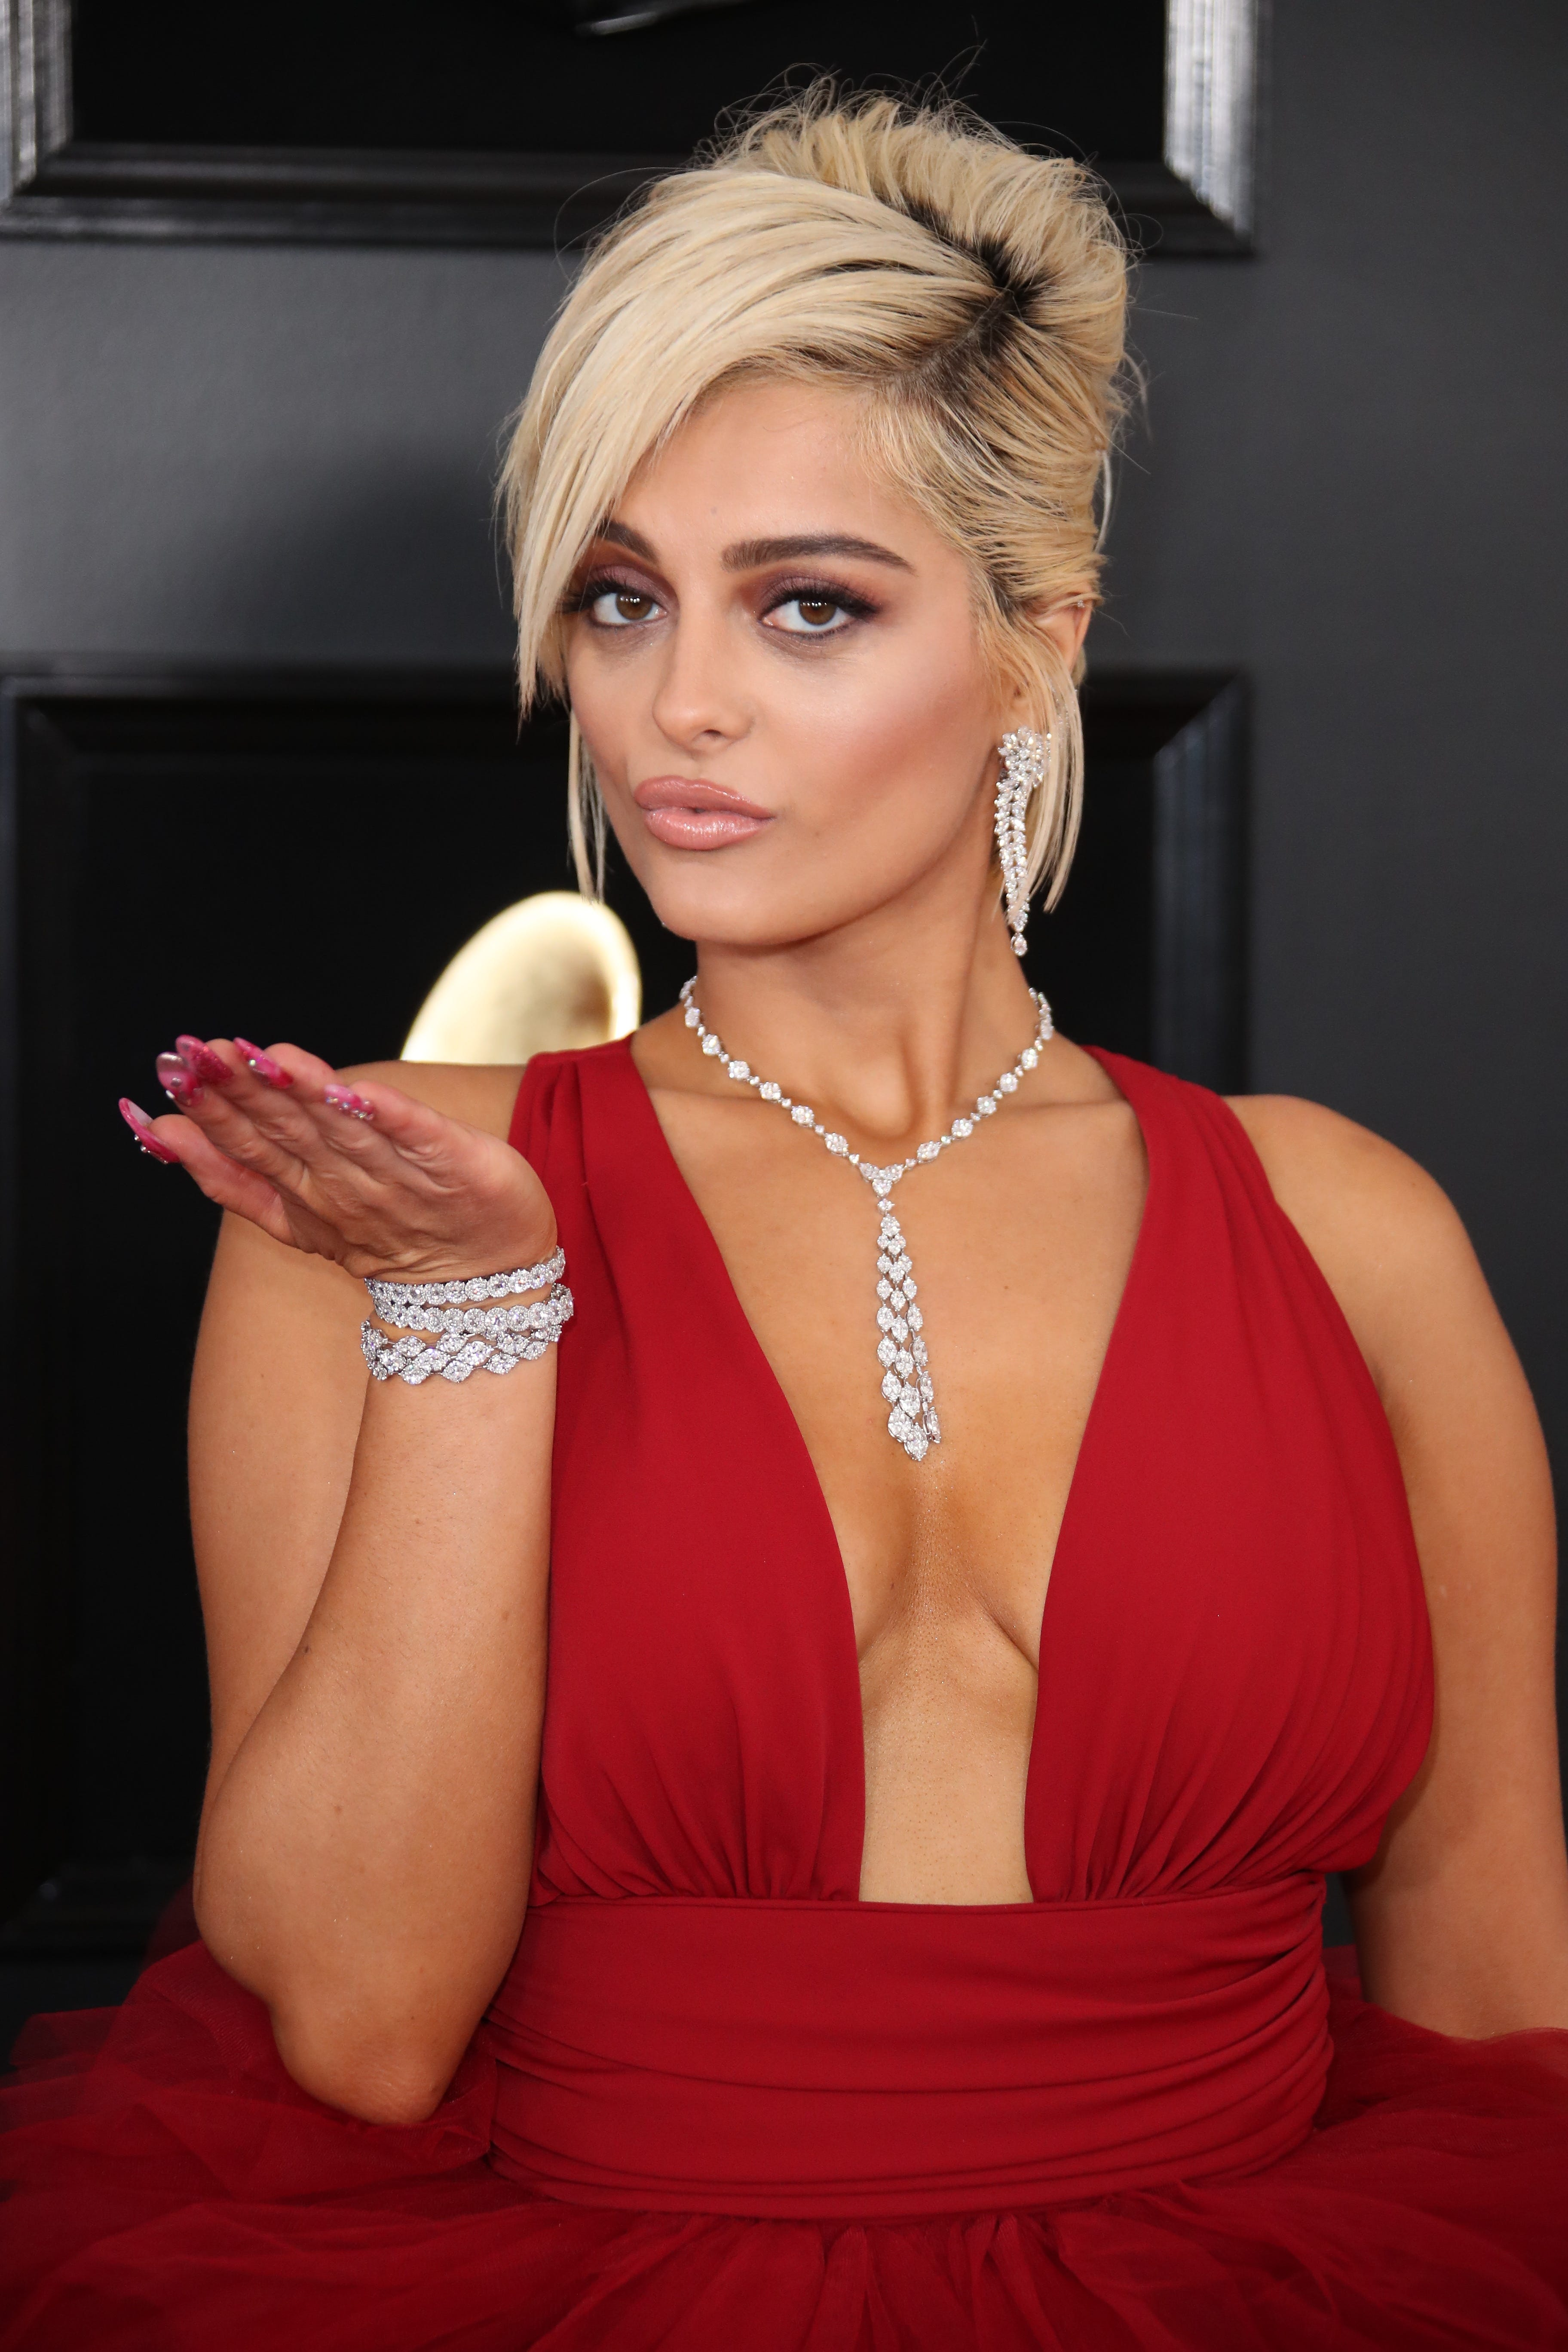 Bebe Rexha posts unedited bikini photo on Instagram to show 'what a real woman looks like'